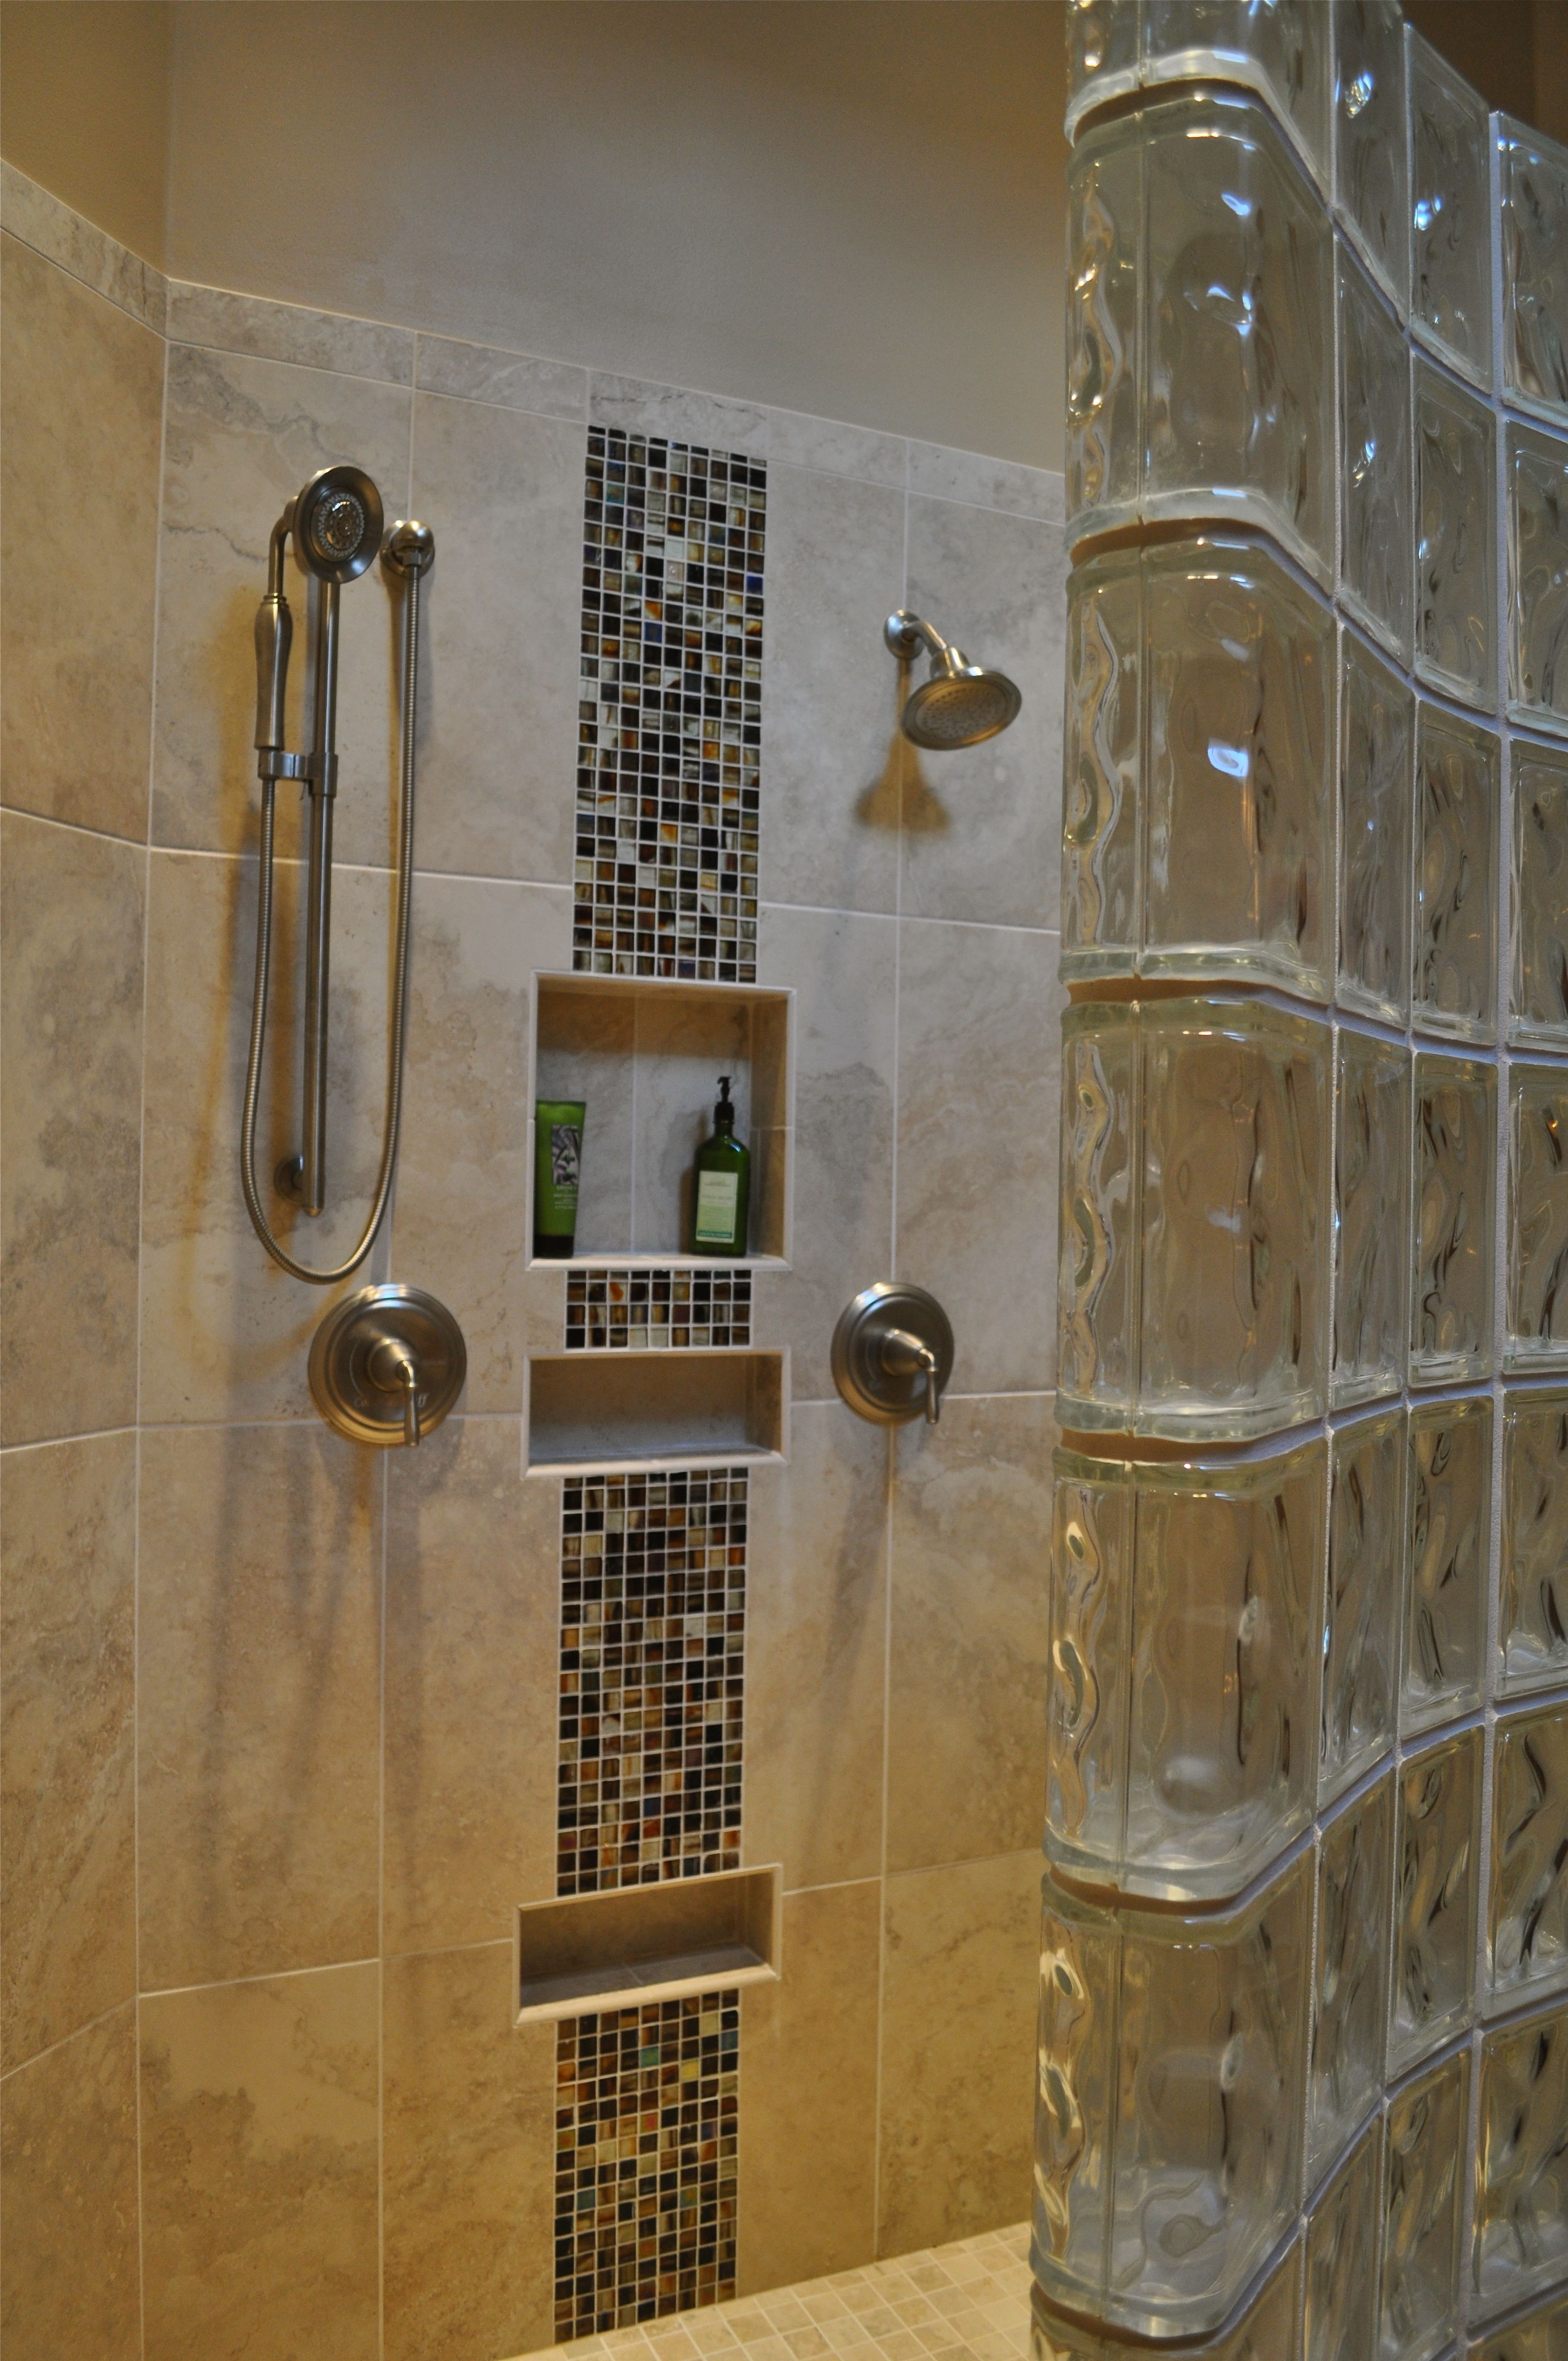 pics tile nickel brushed showers remodel glass shower ideas design stalls curtain natural with doors designs faucets on towel curtains re room bathroom des small sets a lowes me budget